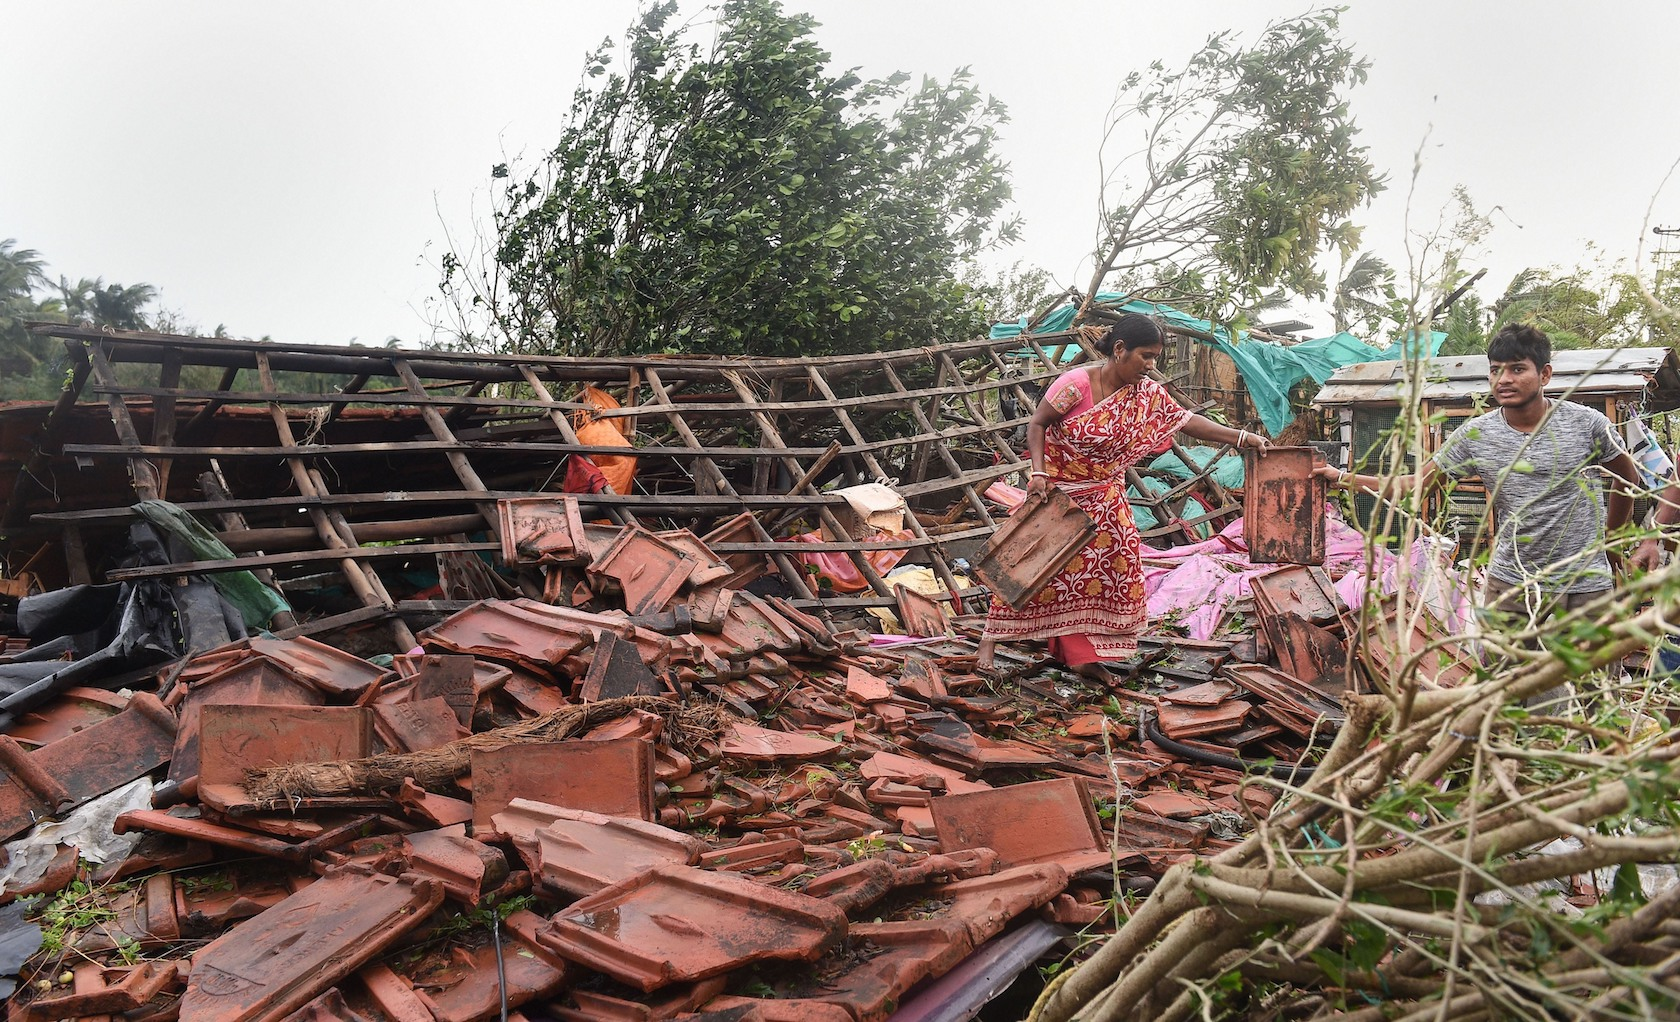 A woman stands on the remnants of her house in the aftermath of Cyclone Bulbul, at Bakkhali in the South 24 Parganas district of West Bengal, on Sunday, November 10, 2019